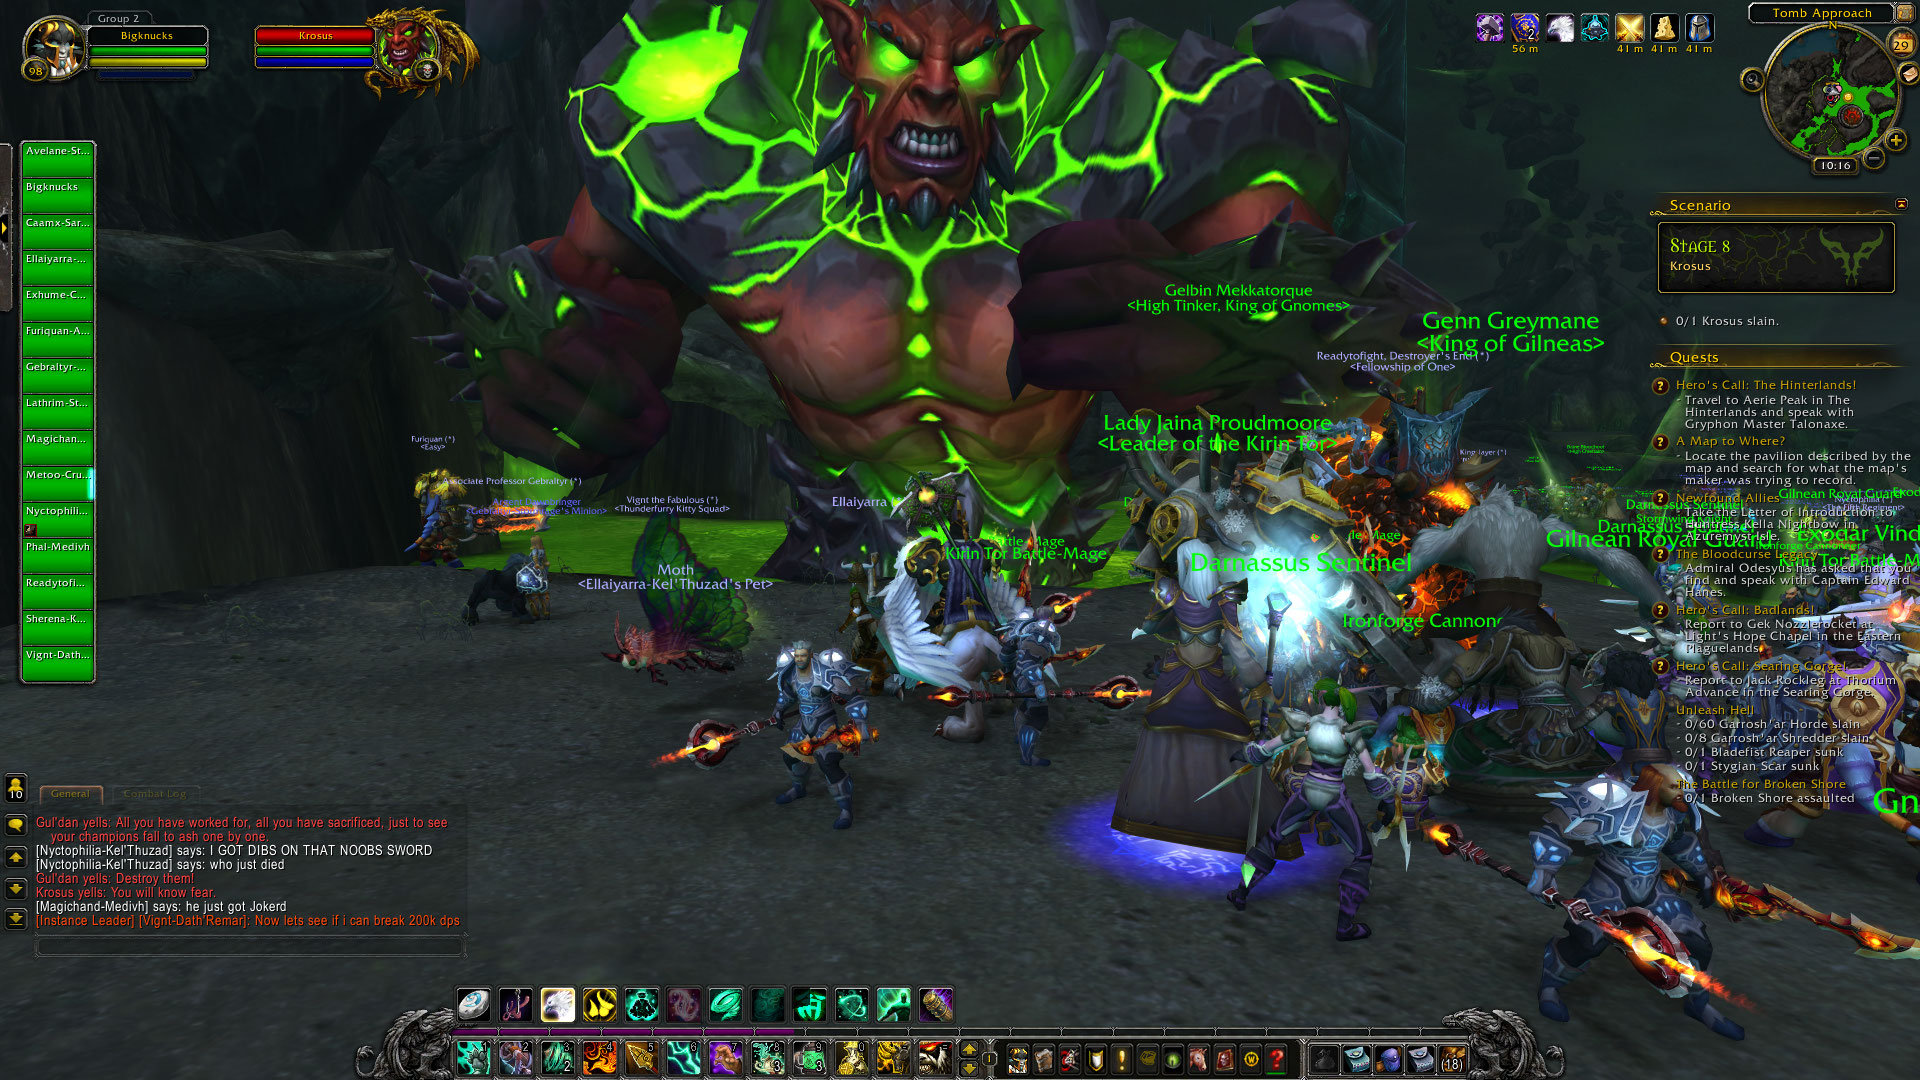 revisiting the world of warcraft, nine years after i left | ars technica